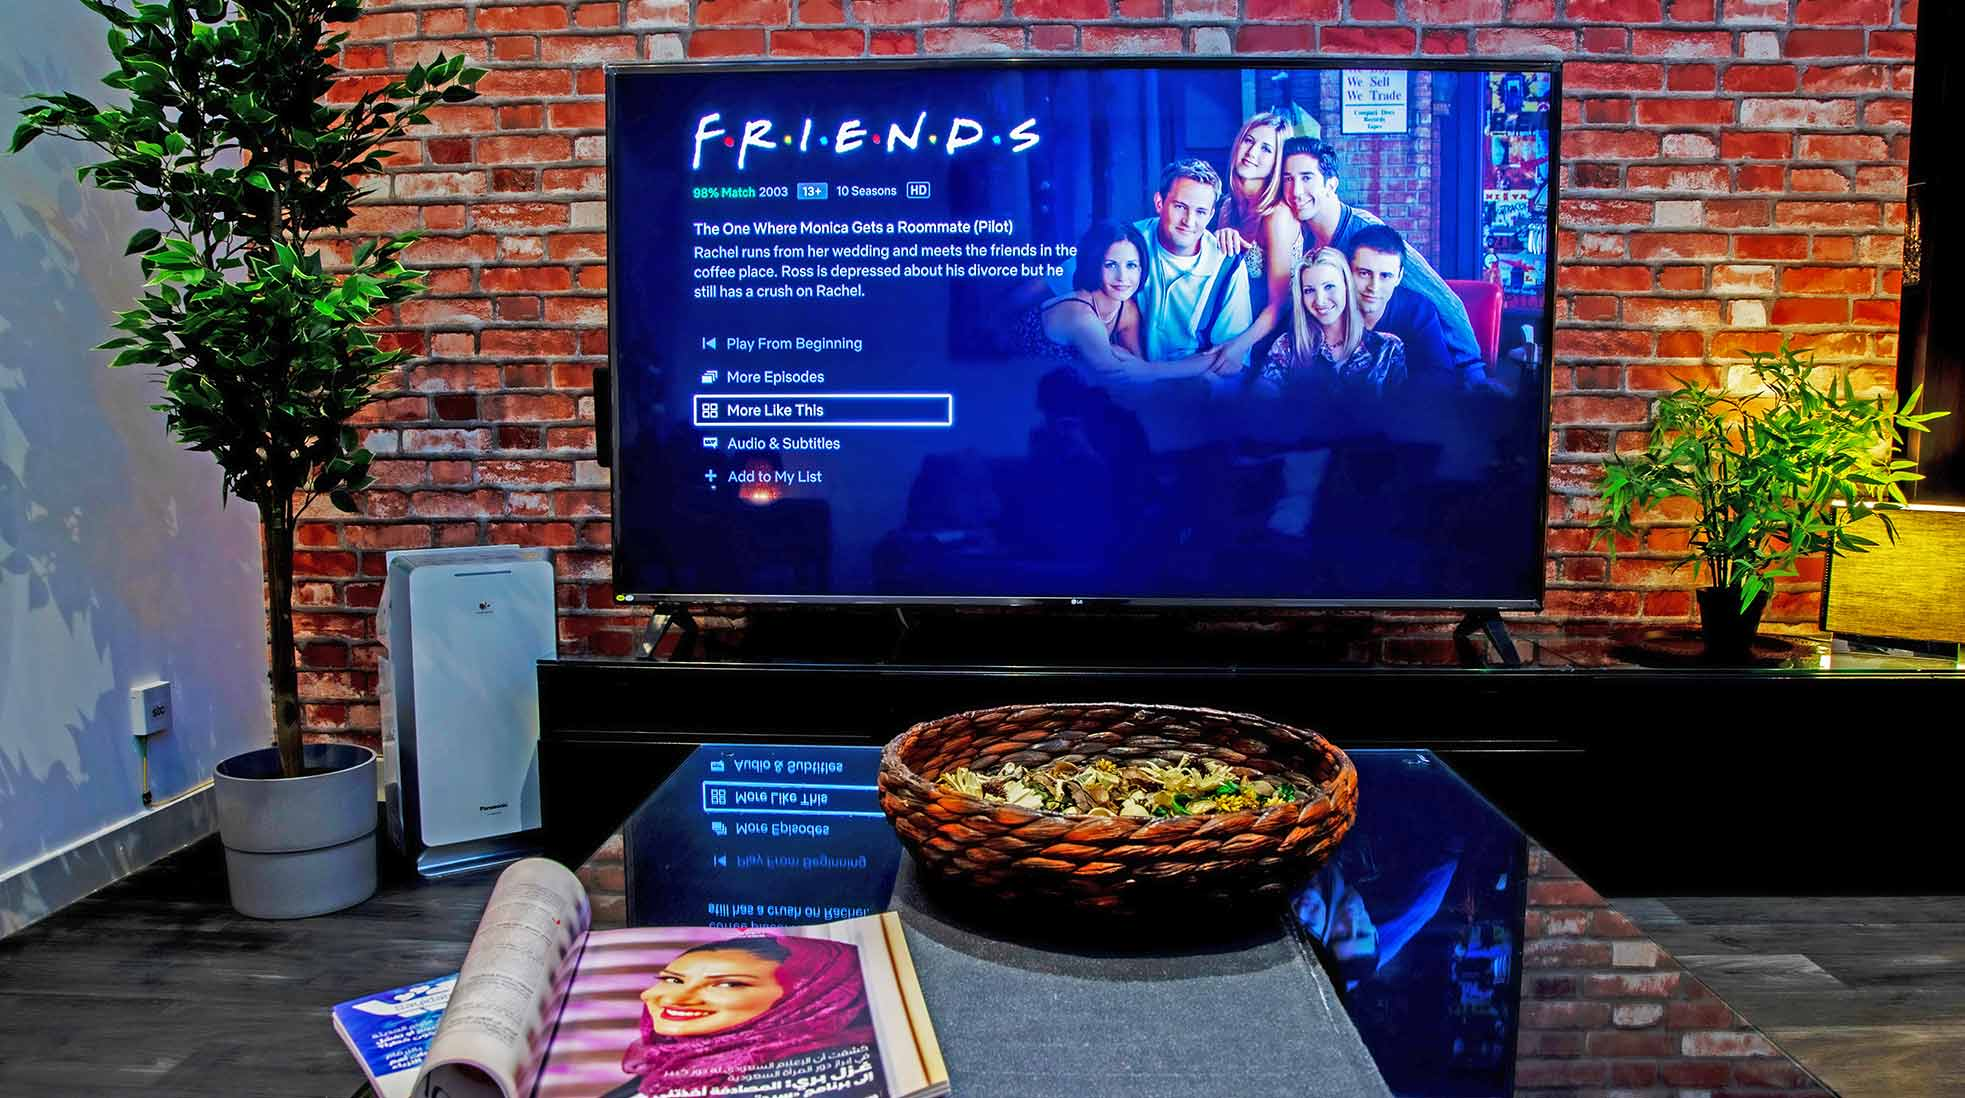 Friends is one of the most popular TV shows in recent history. Photo: Mahrous Houses / Unsplash